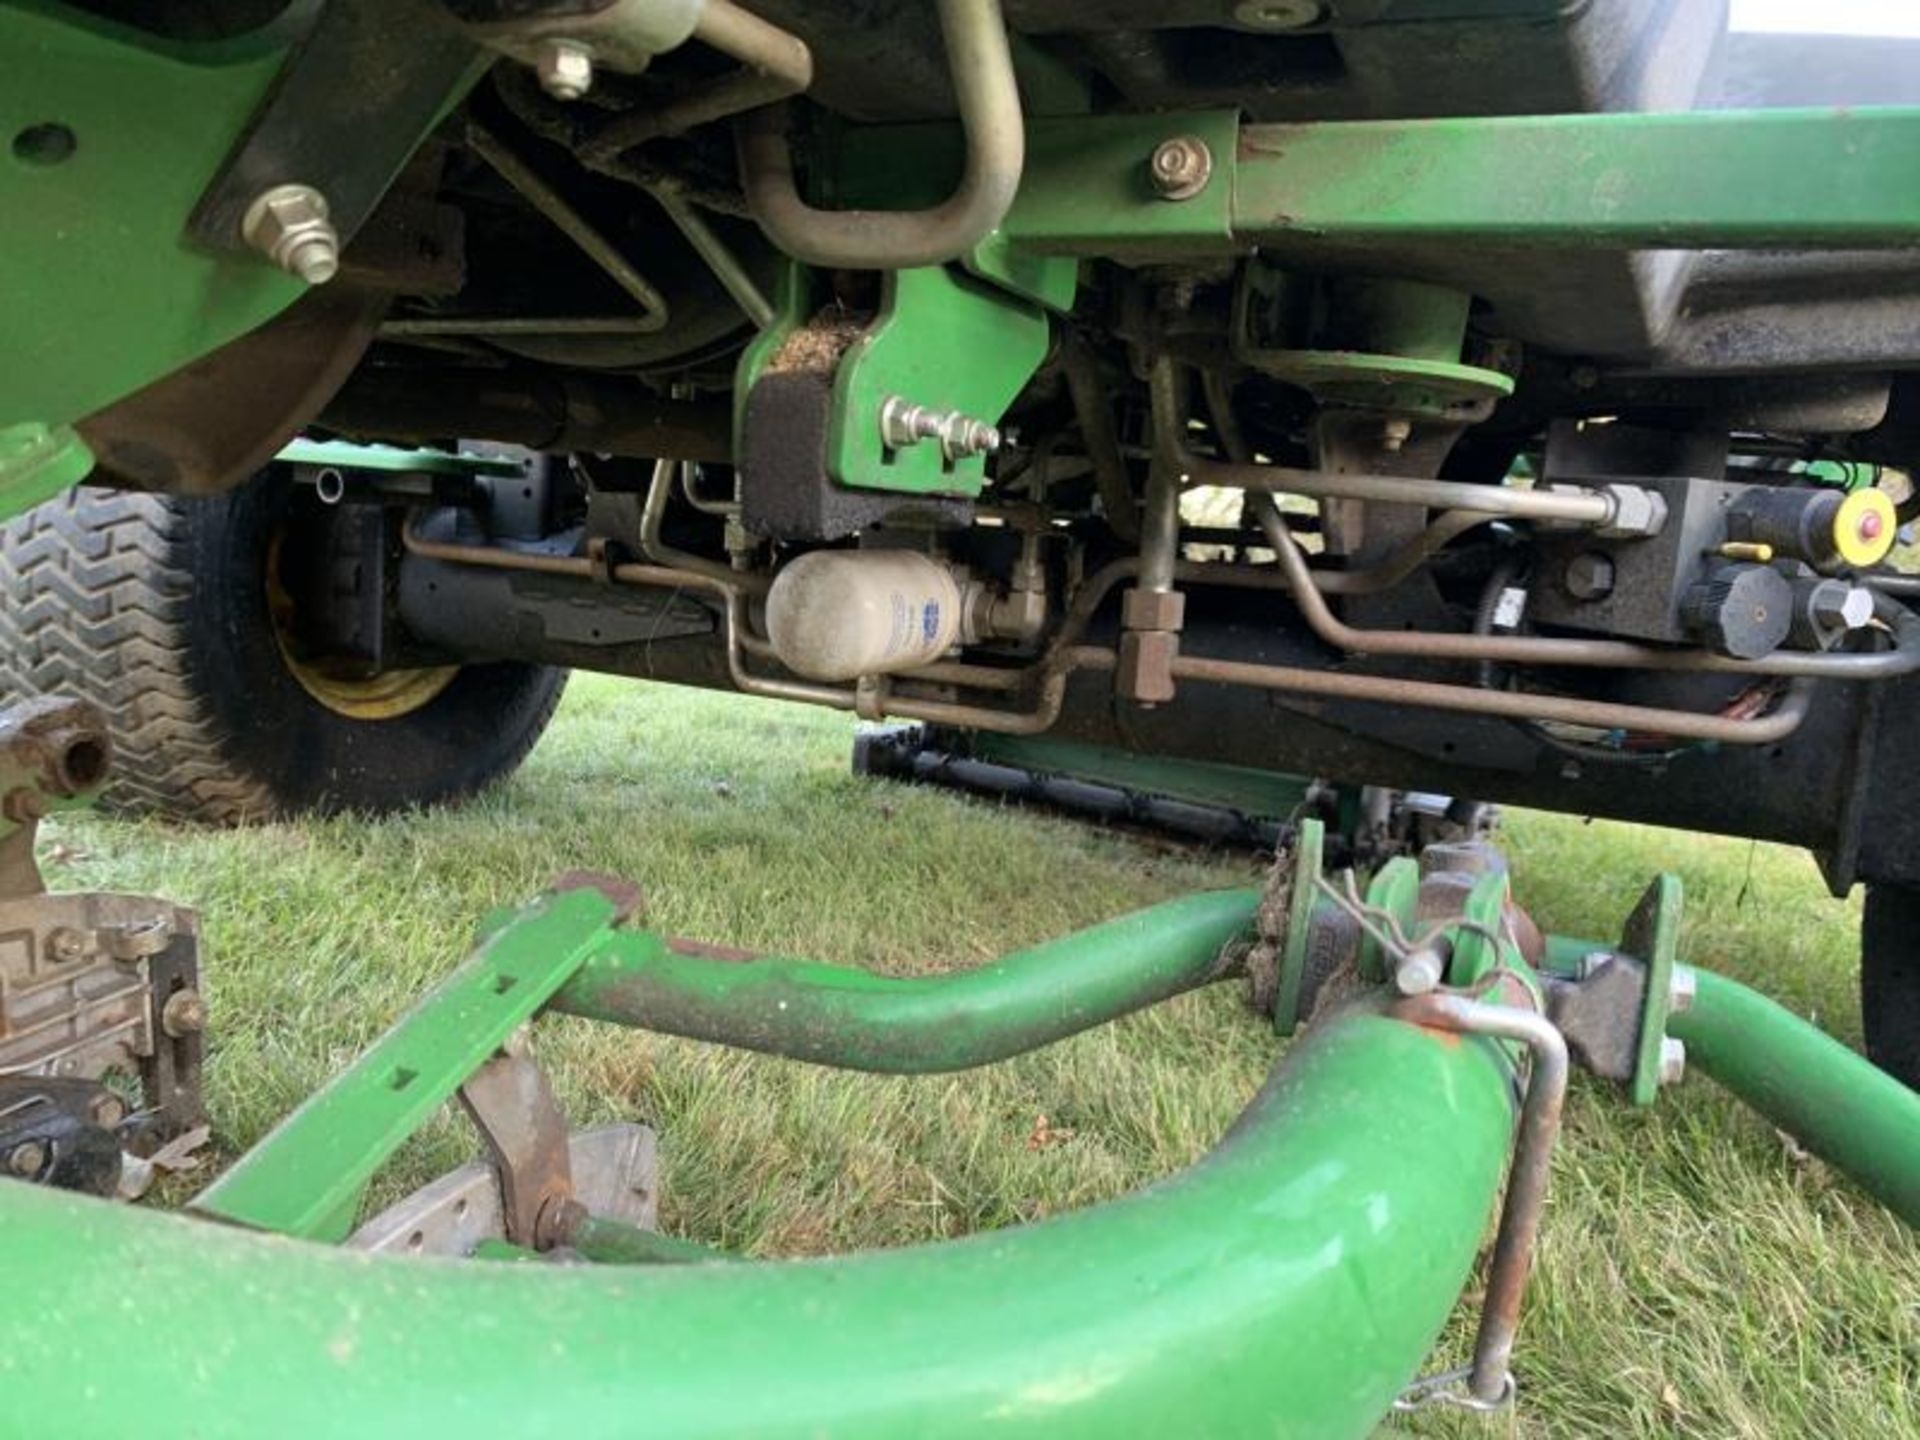 2016 John Deere 7500A Precision Cut 2WD T4, 2,355 Hours, SN: 1TC750AVLGR030141 - Image 5 of 17